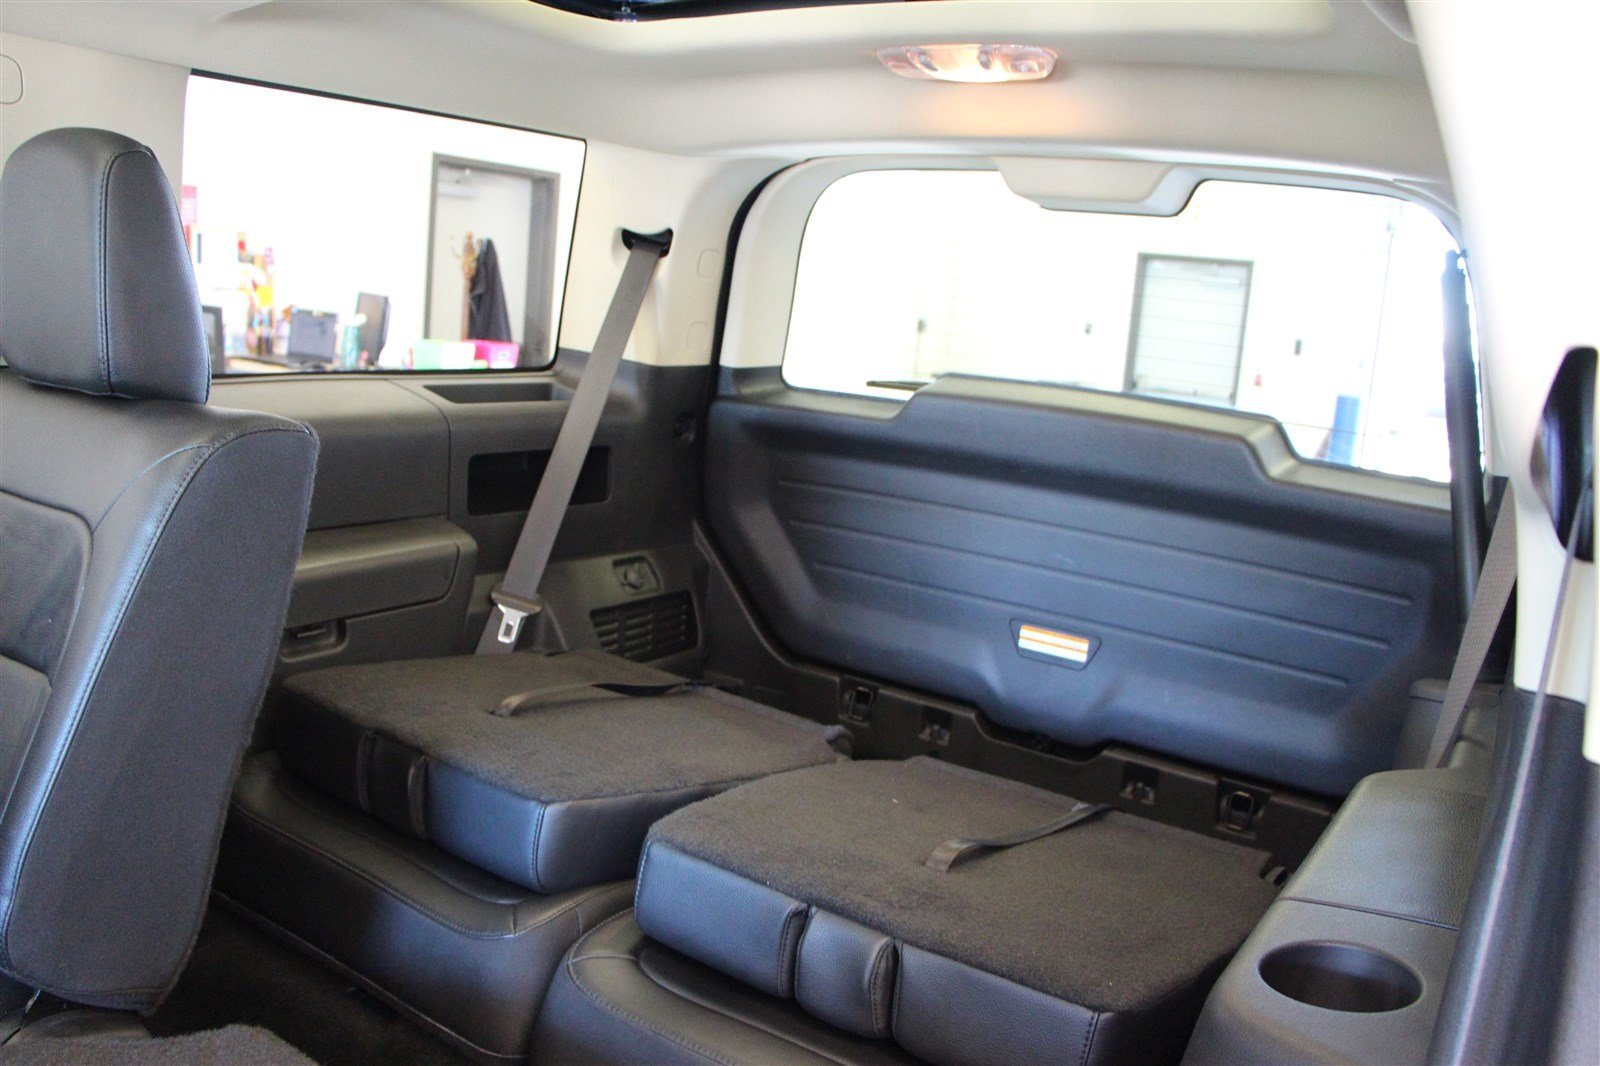 pre owned 2015 ford flex sel fwd 3rd row seating reverse camera sunroof suv in regina 87220a. Black Bedroom Furniture Sets. Home Design Ideas